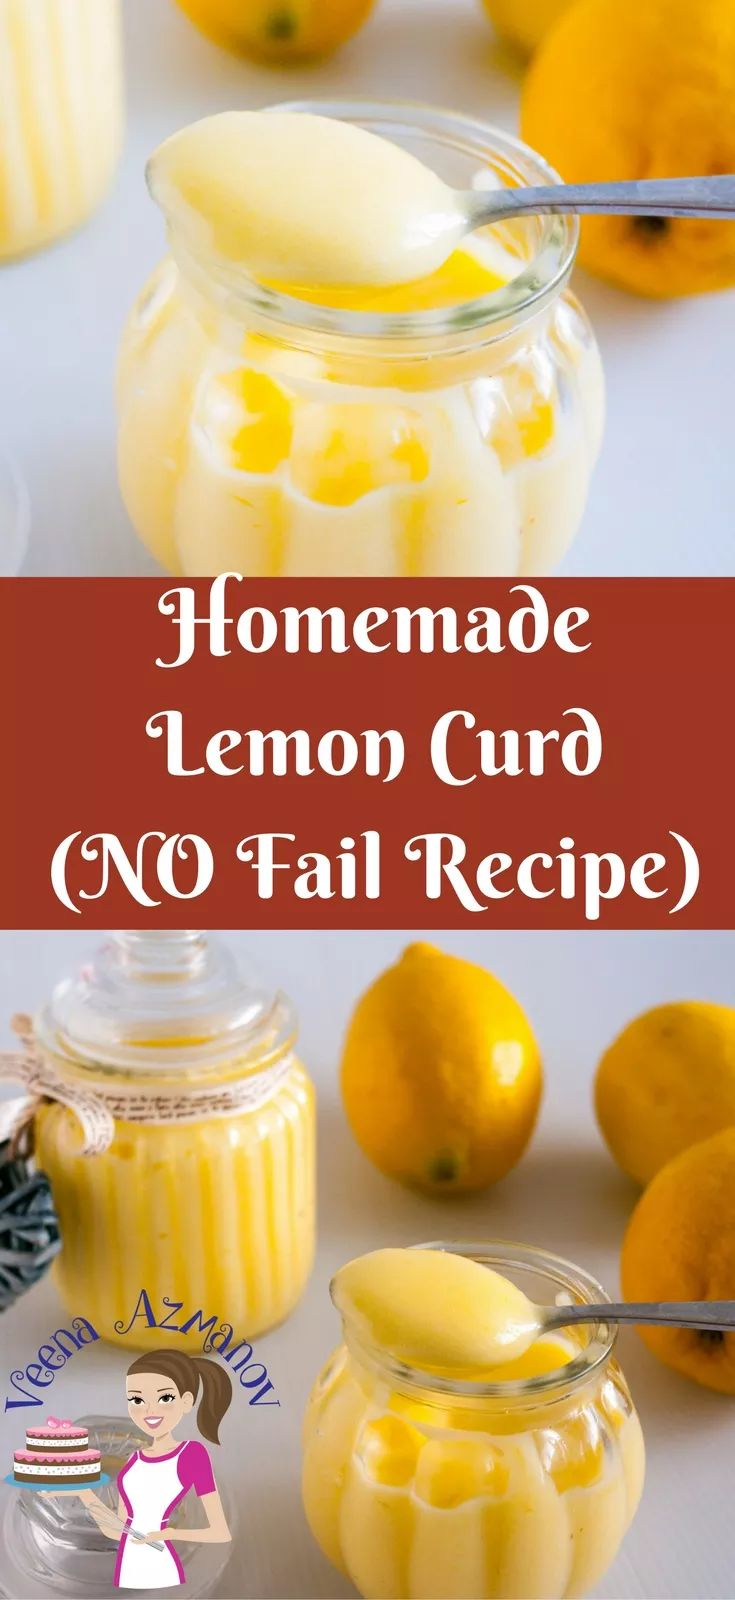 This No Fail Lemon Curd Recipe Will Give You The Confidence You Need To  Make Fruit